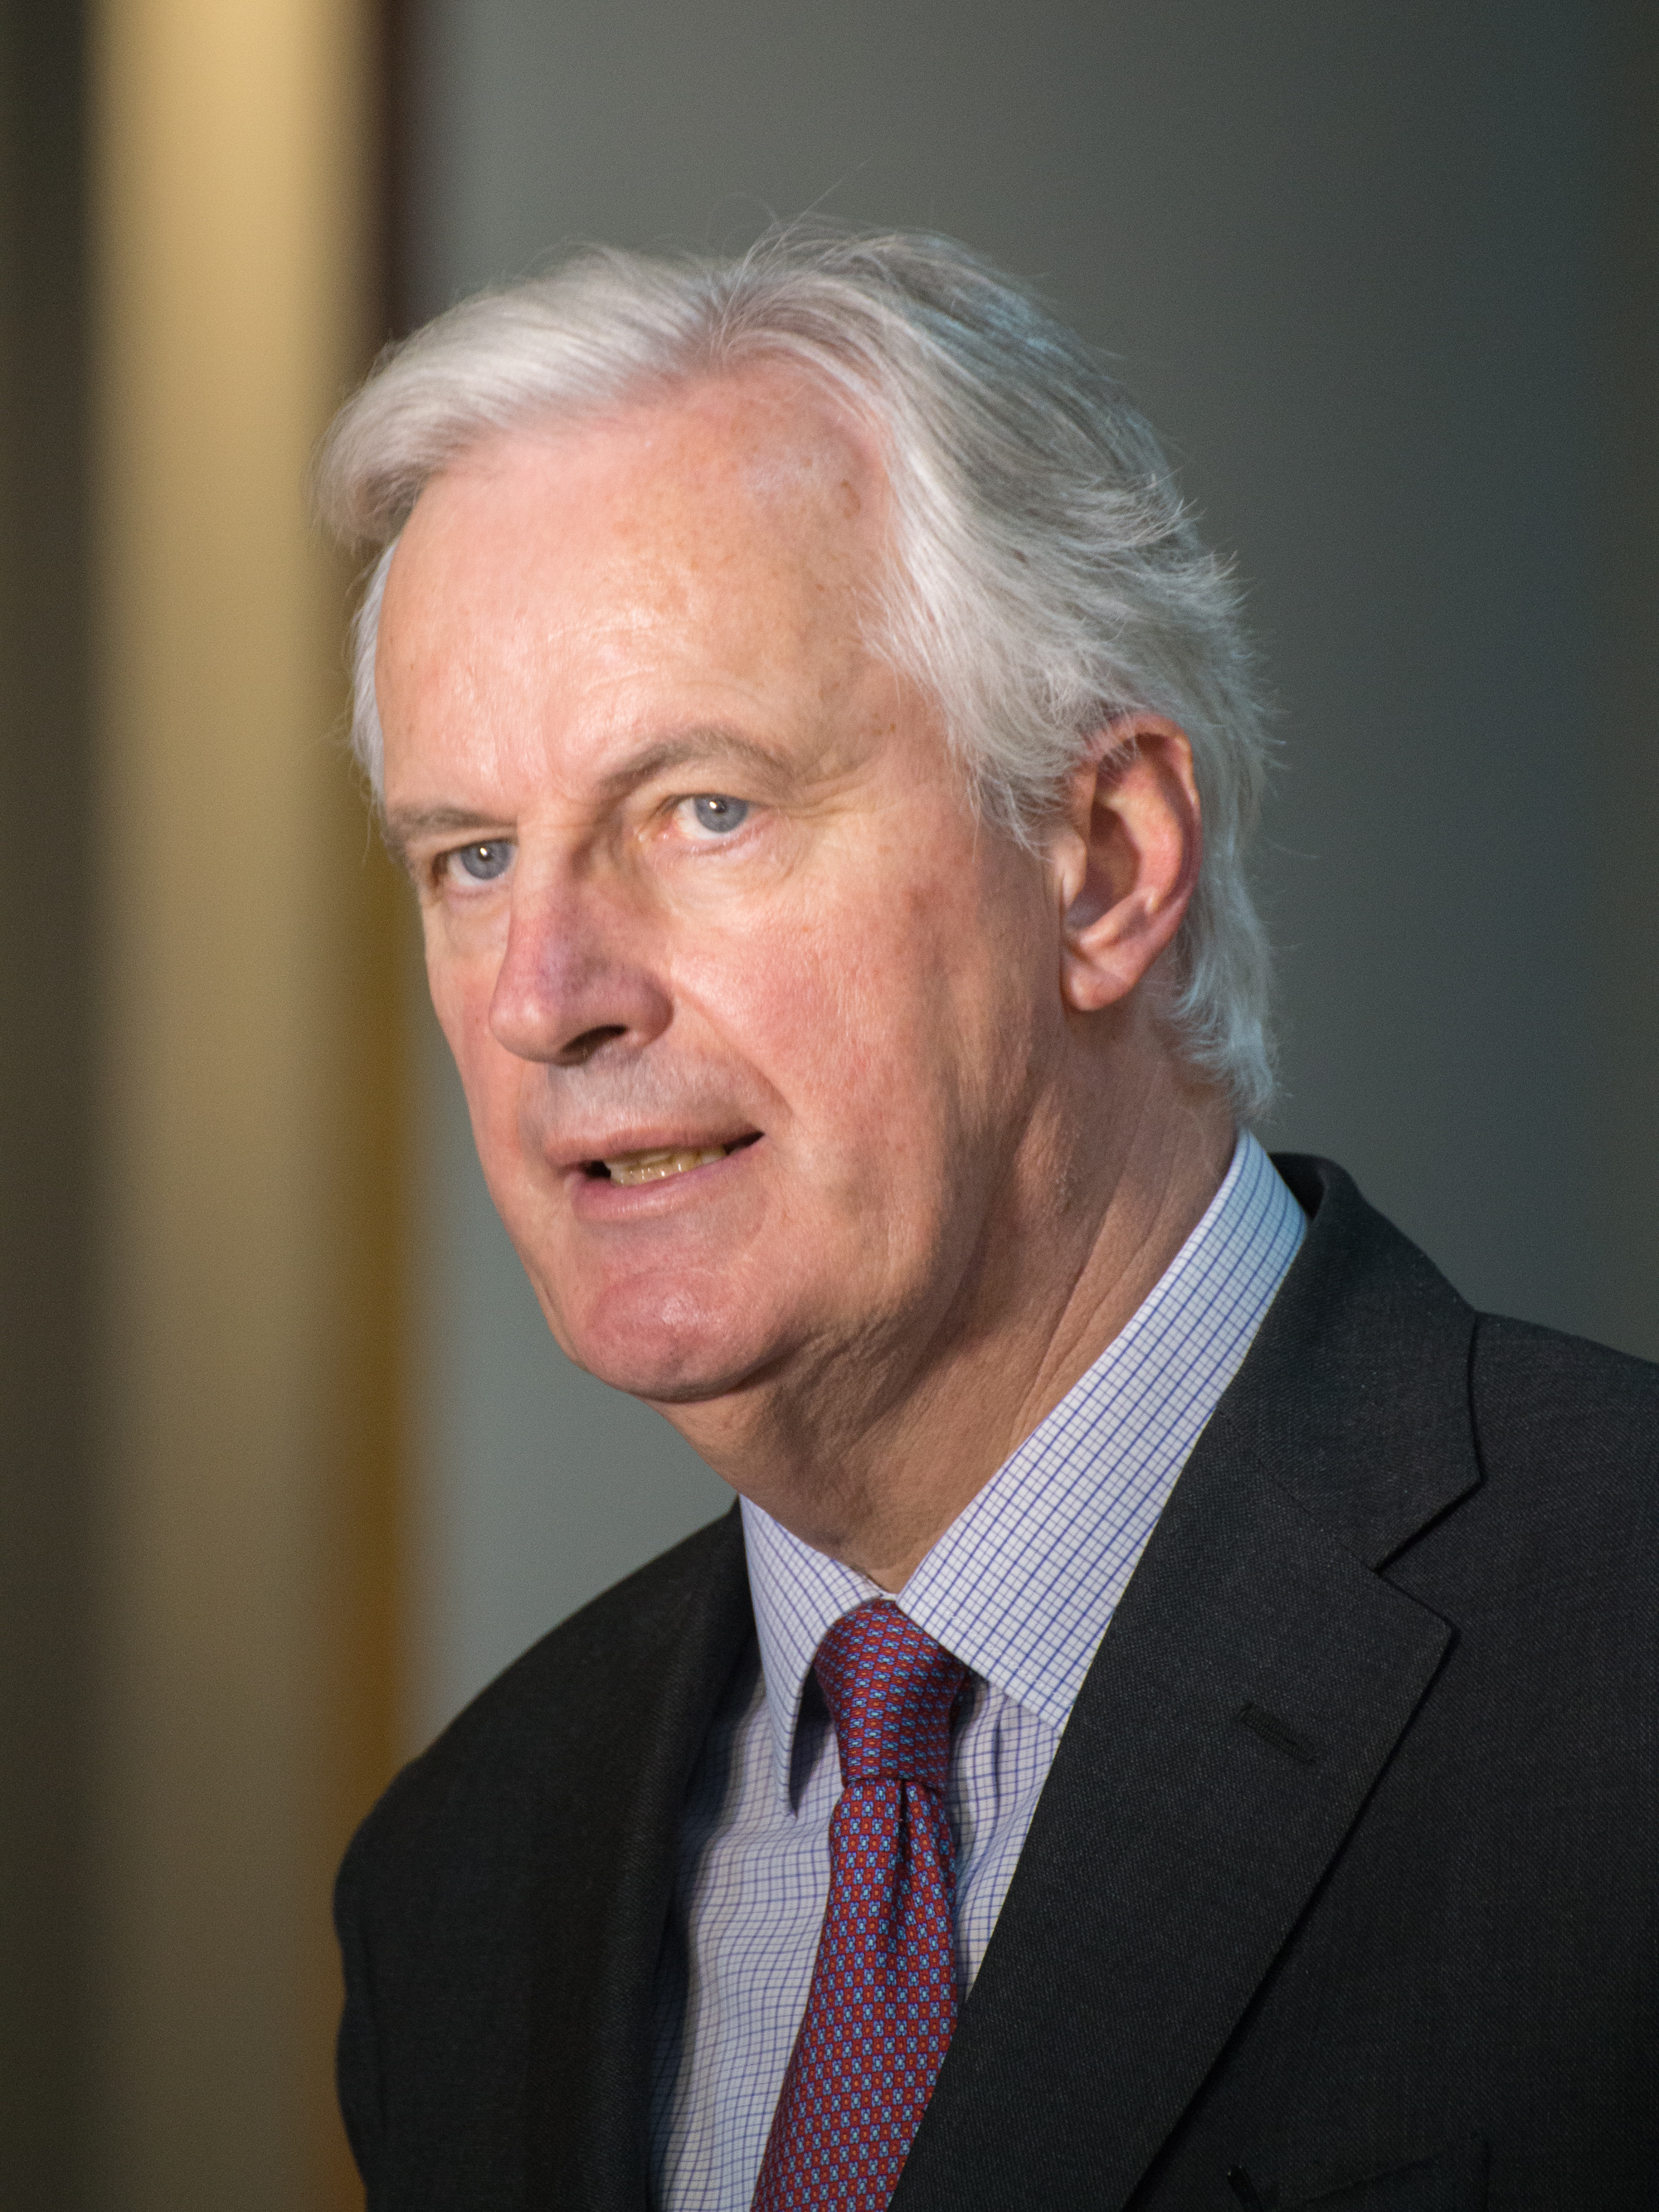 EU's Barnier wishes Britain's Johnson 'a speedy recovery'